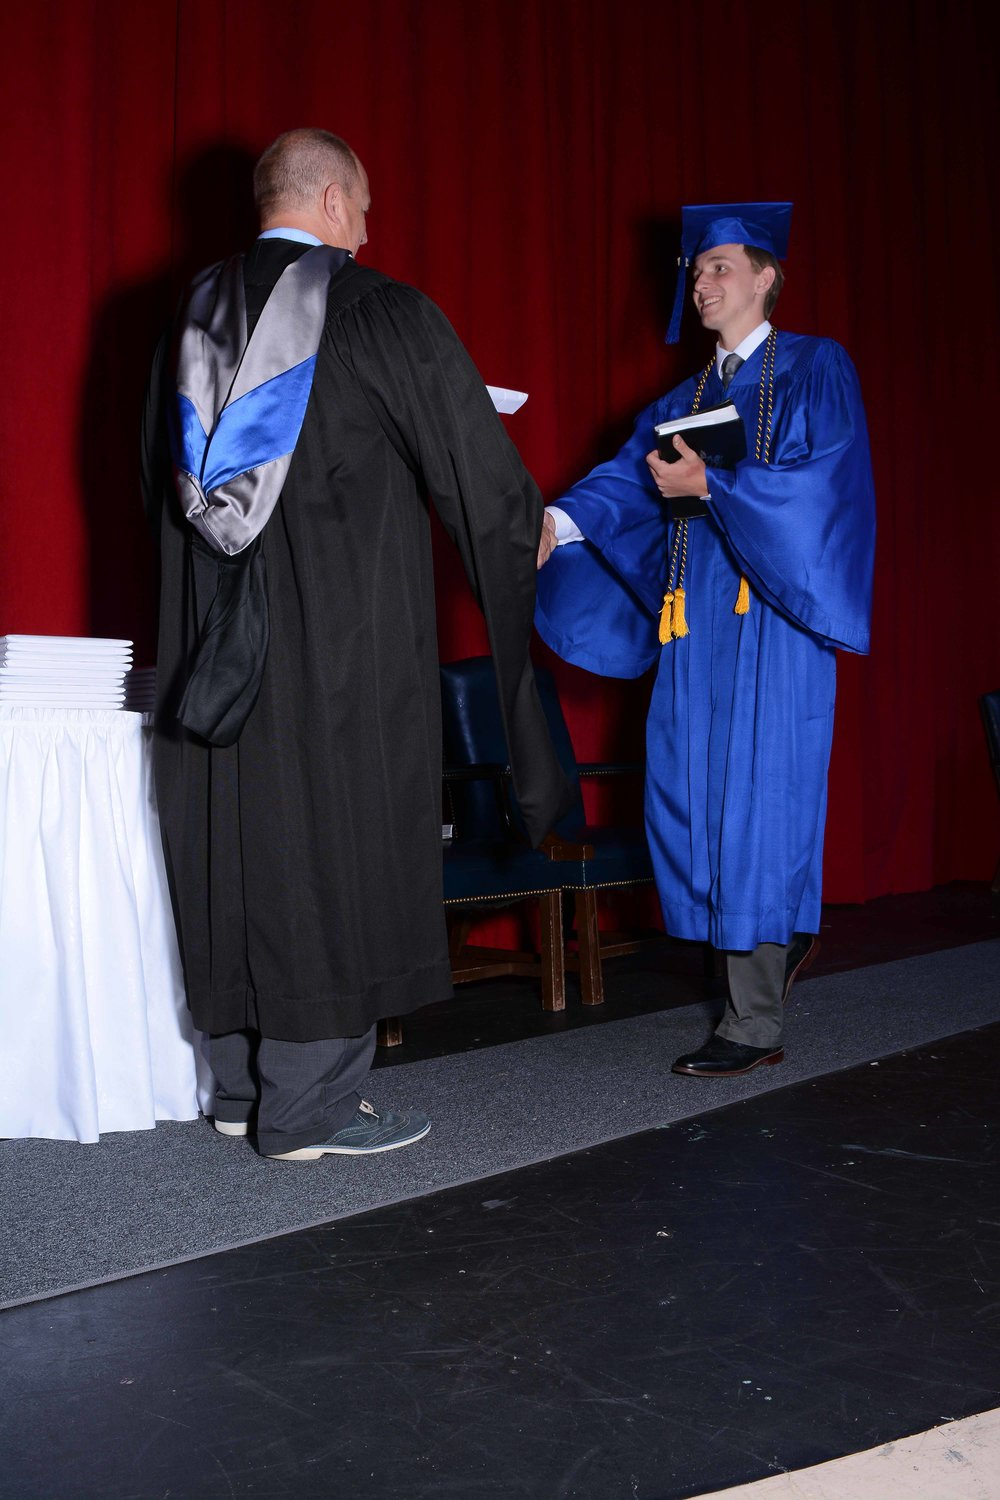 May14 Commencement70.jpg